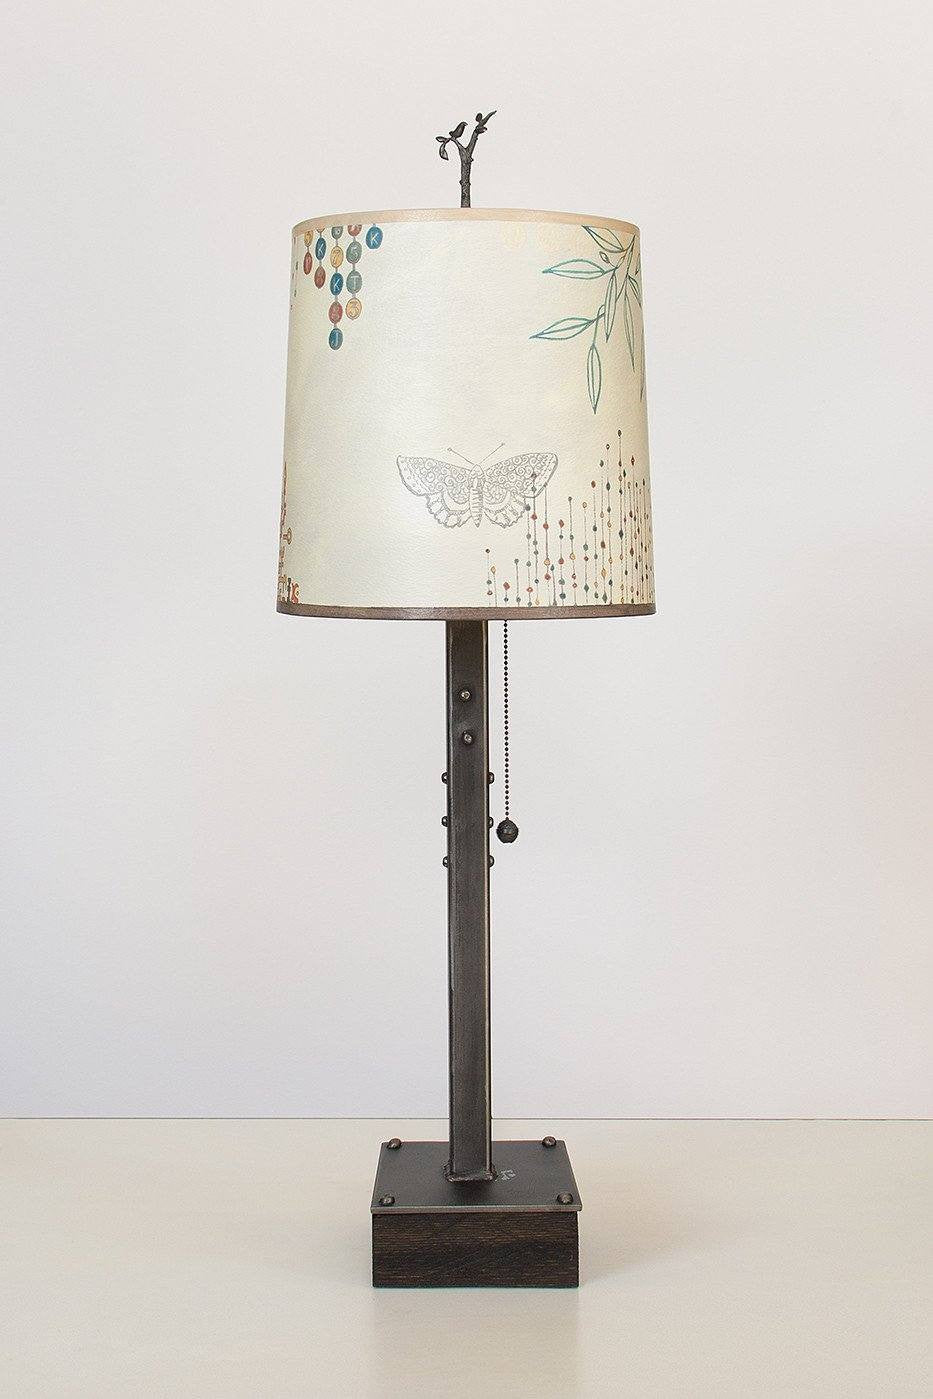 Steel Table Lamp on Wood with Medium Drum Shade in Ecru Journey